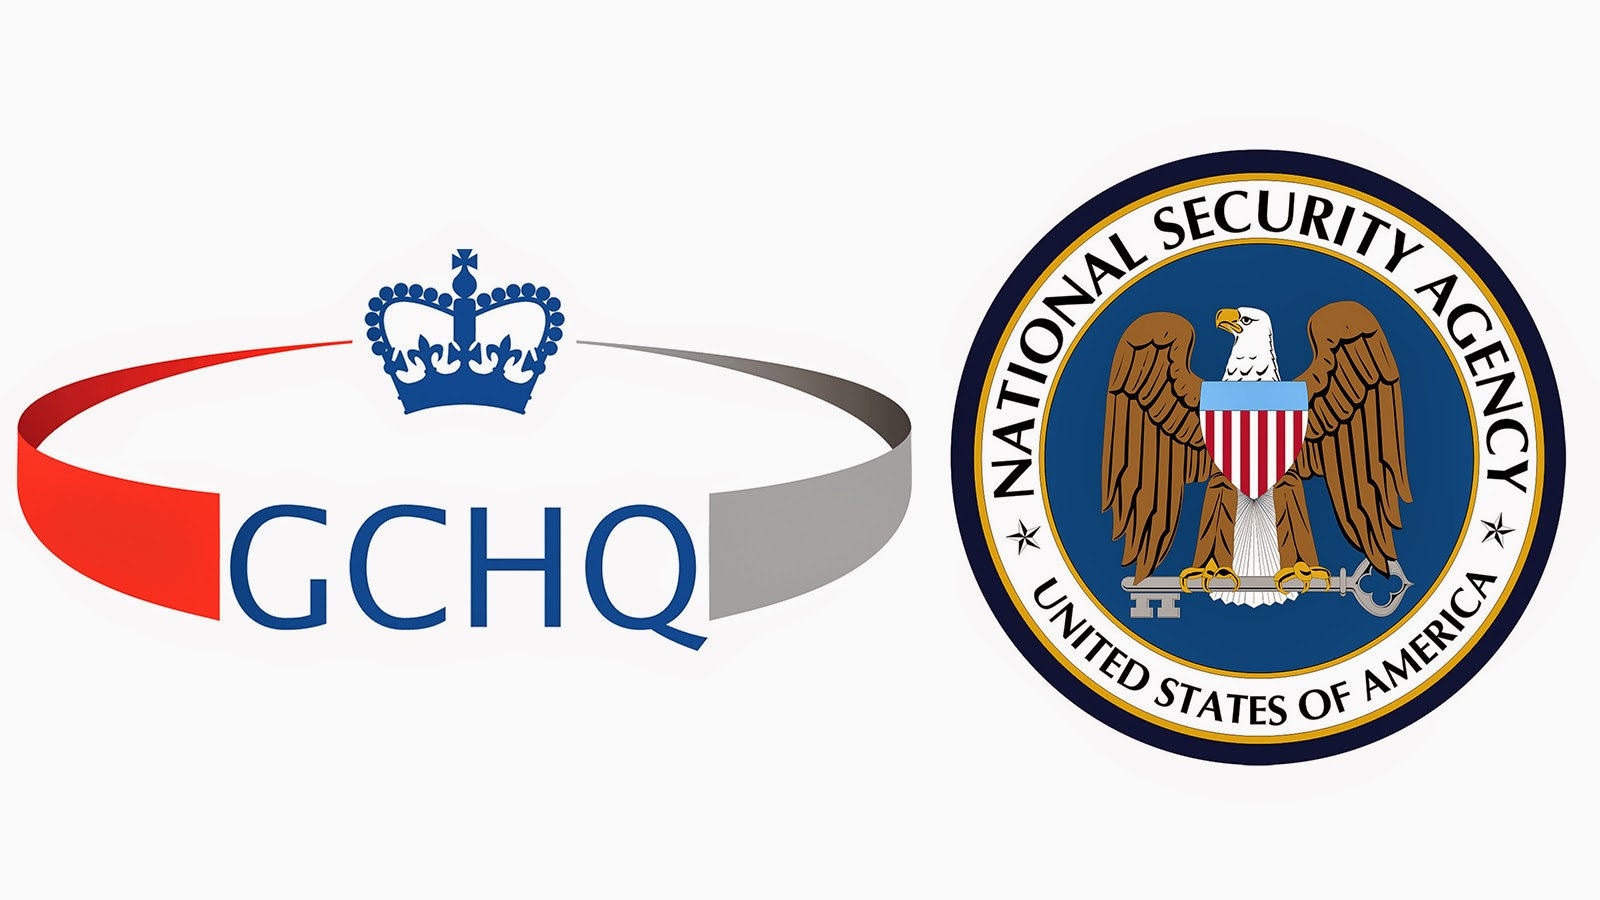 Nsa relationship meaning